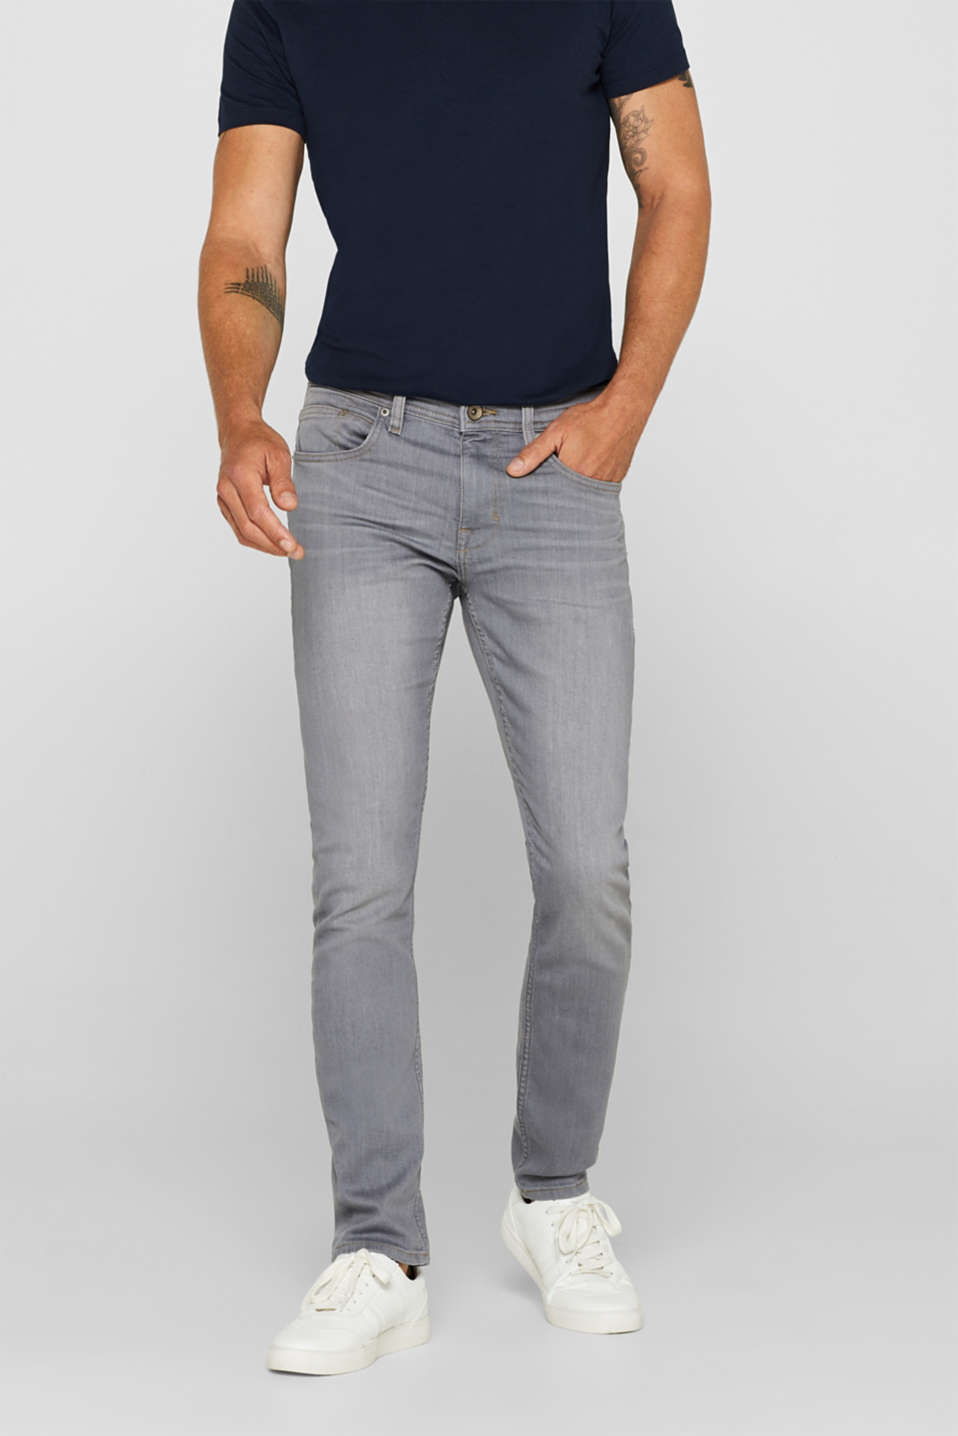 Esprit - Jean super stretch avec la technologie COOLMAX®